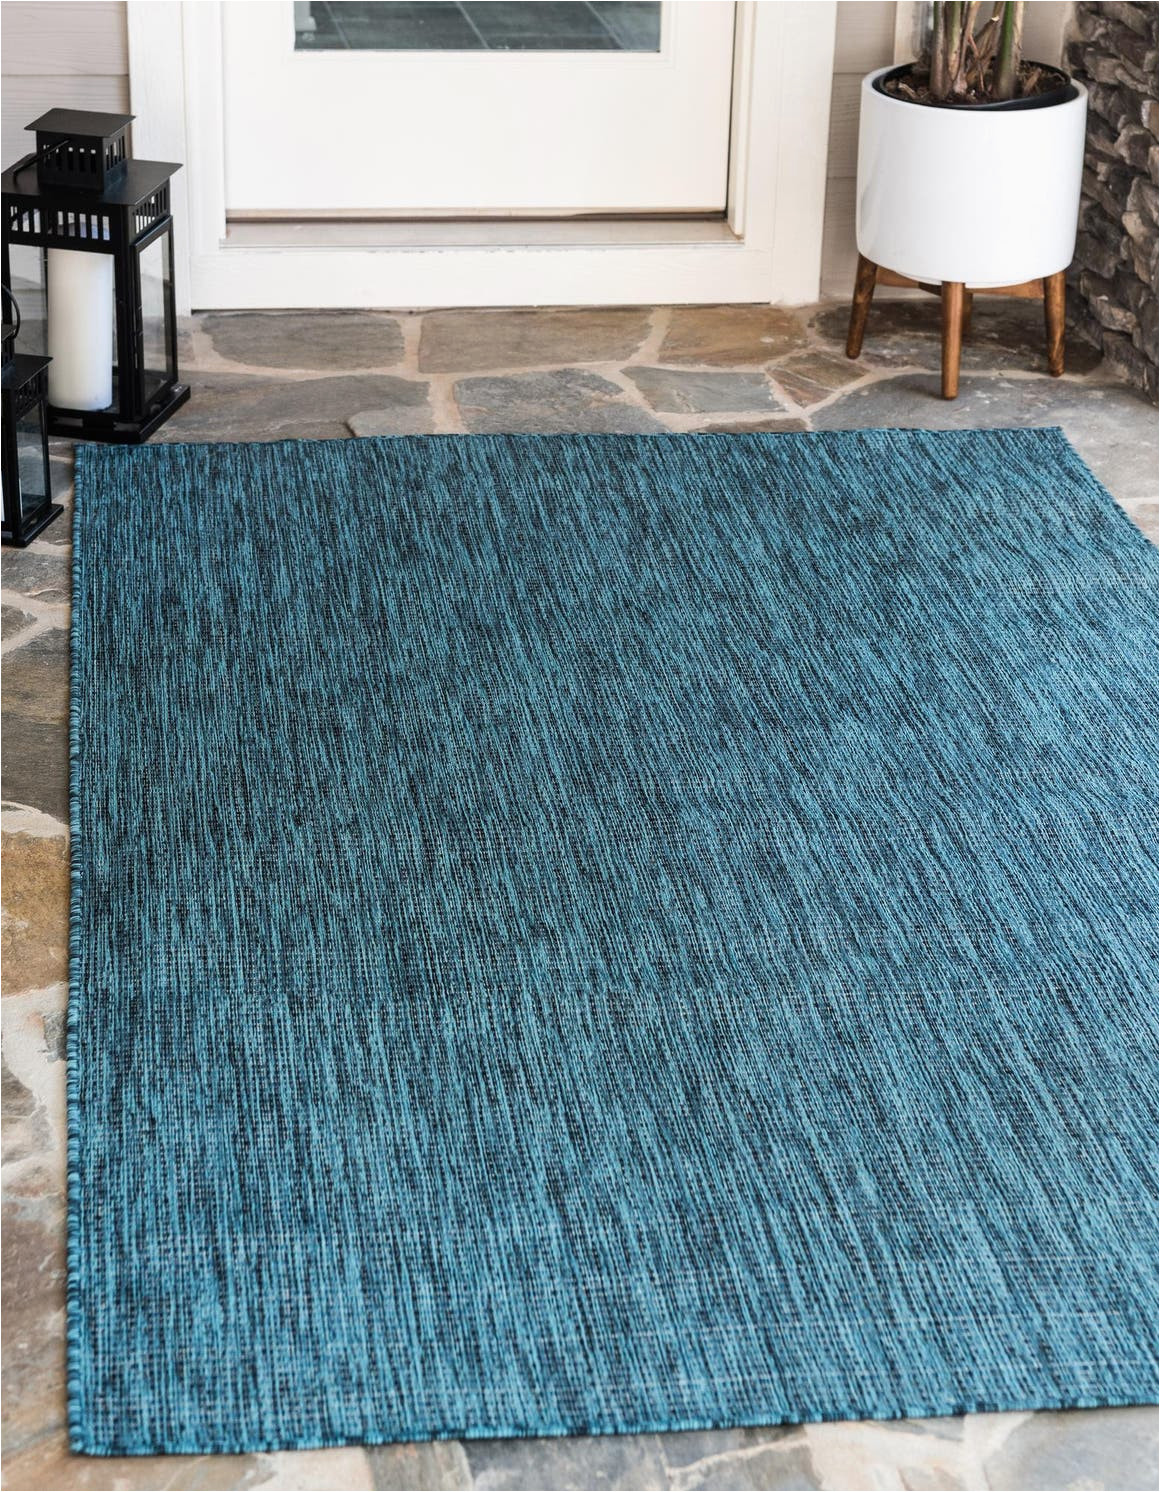 Teal and Blue Rug 4 X 6 Outdoor solid Rug